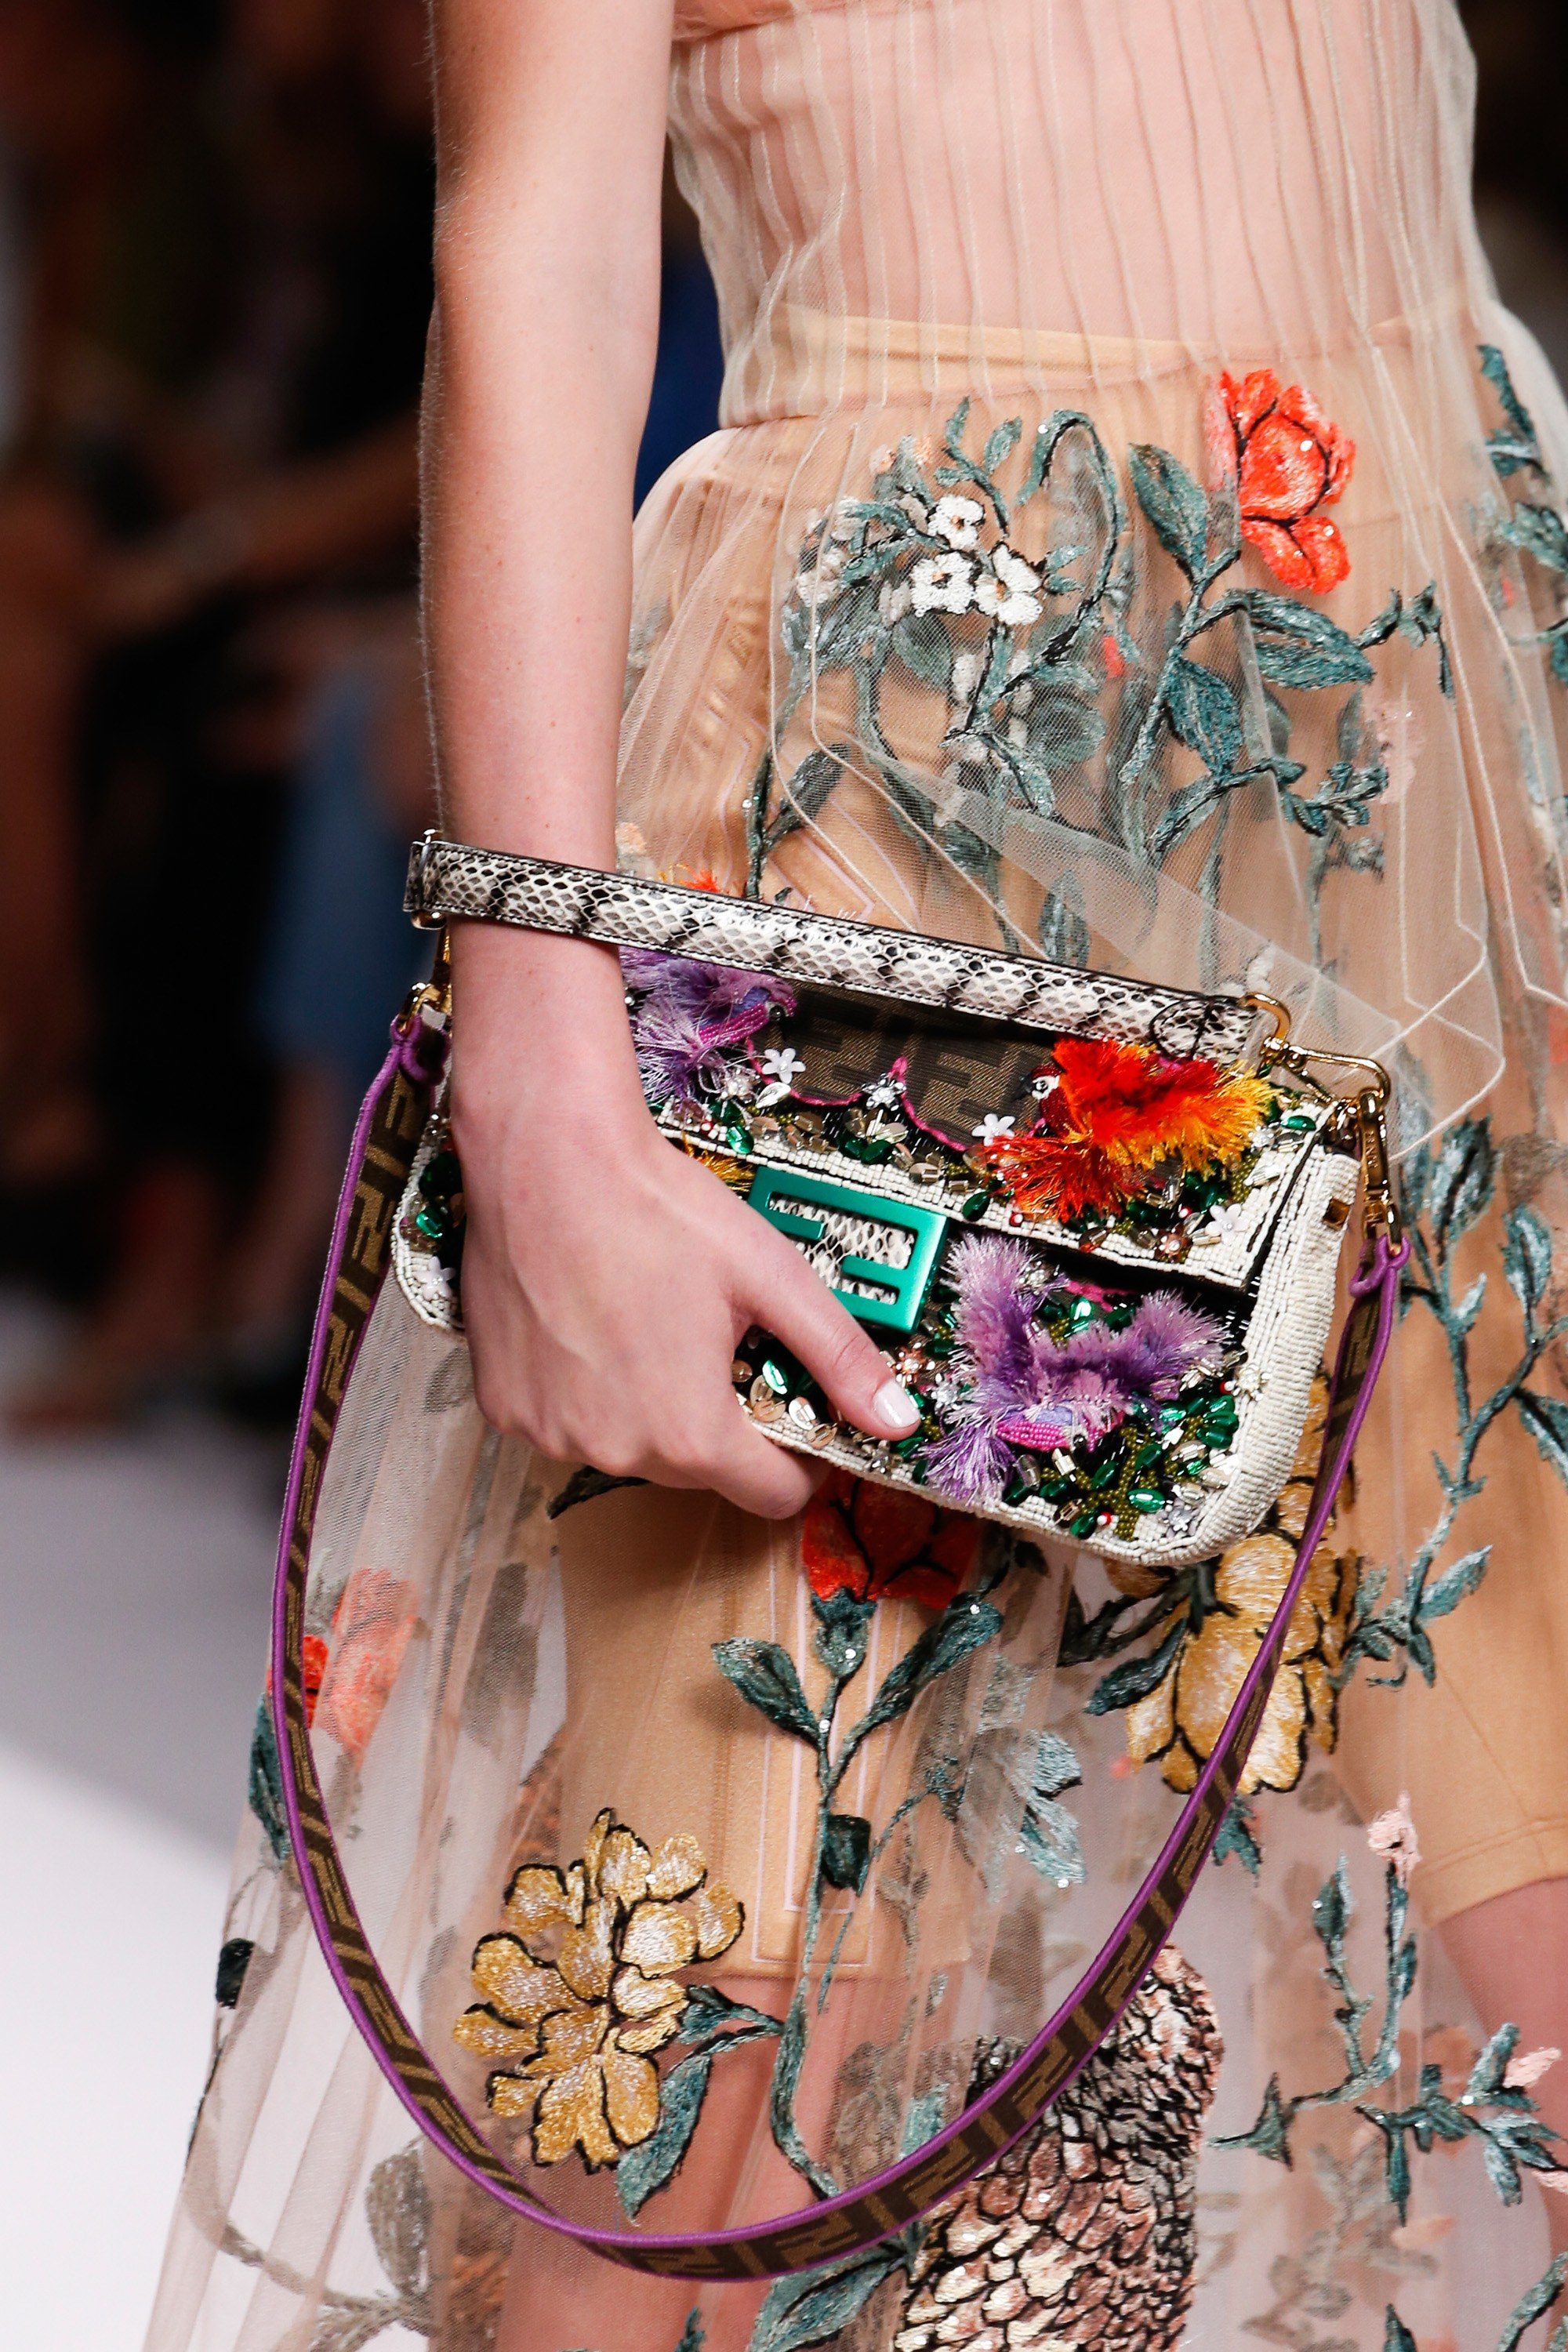 Fendi Spring Summer 2019 Runway Bag Collection Spotted